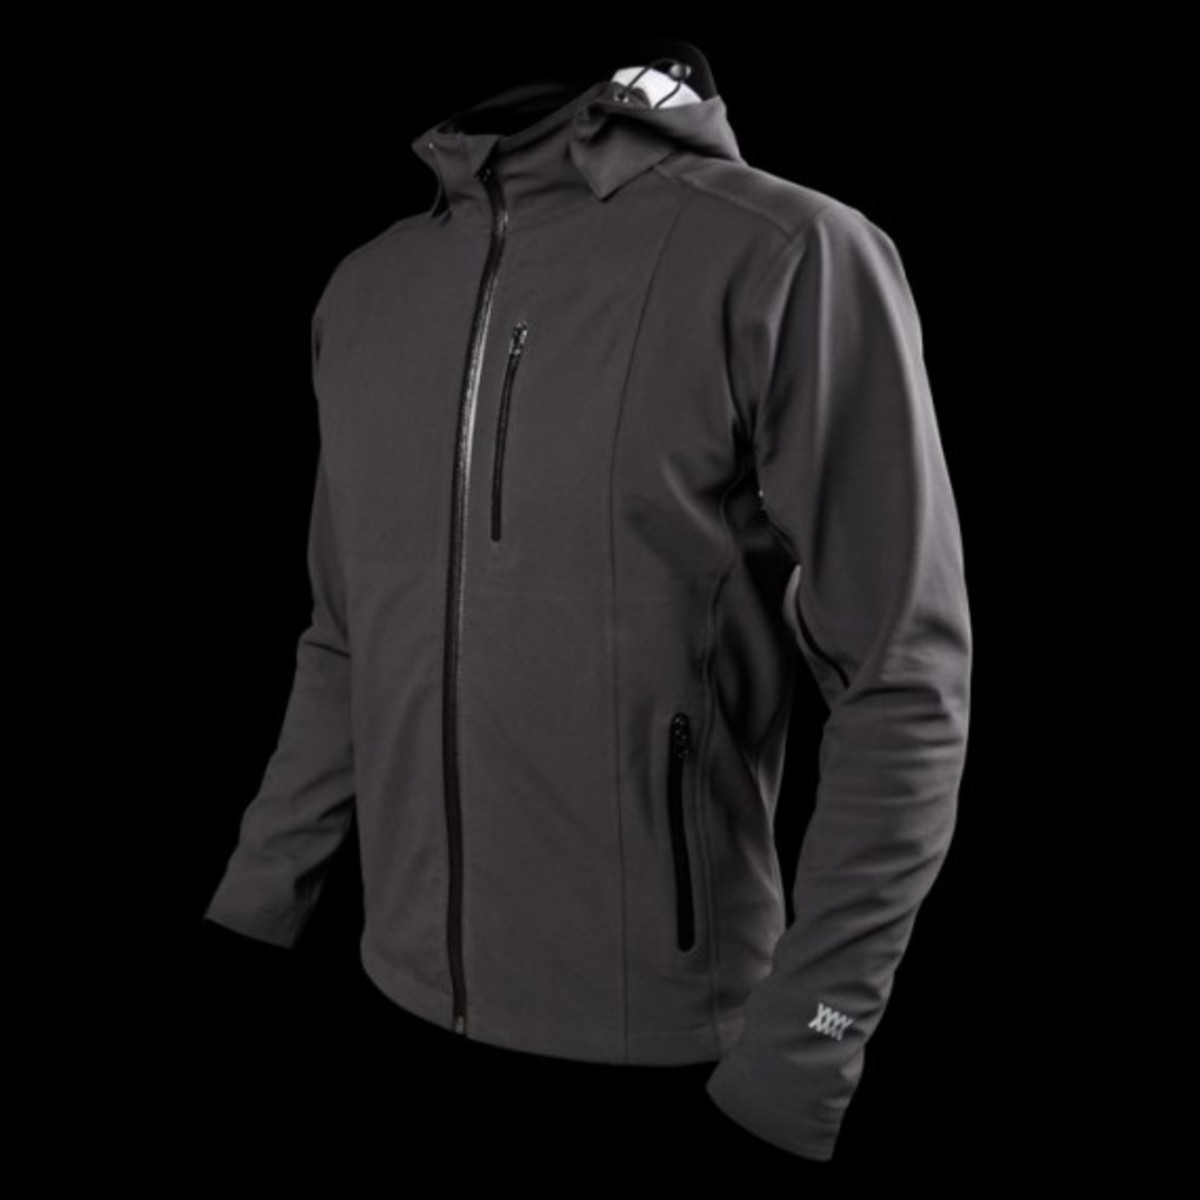 Orion Waterproof Jacket 5